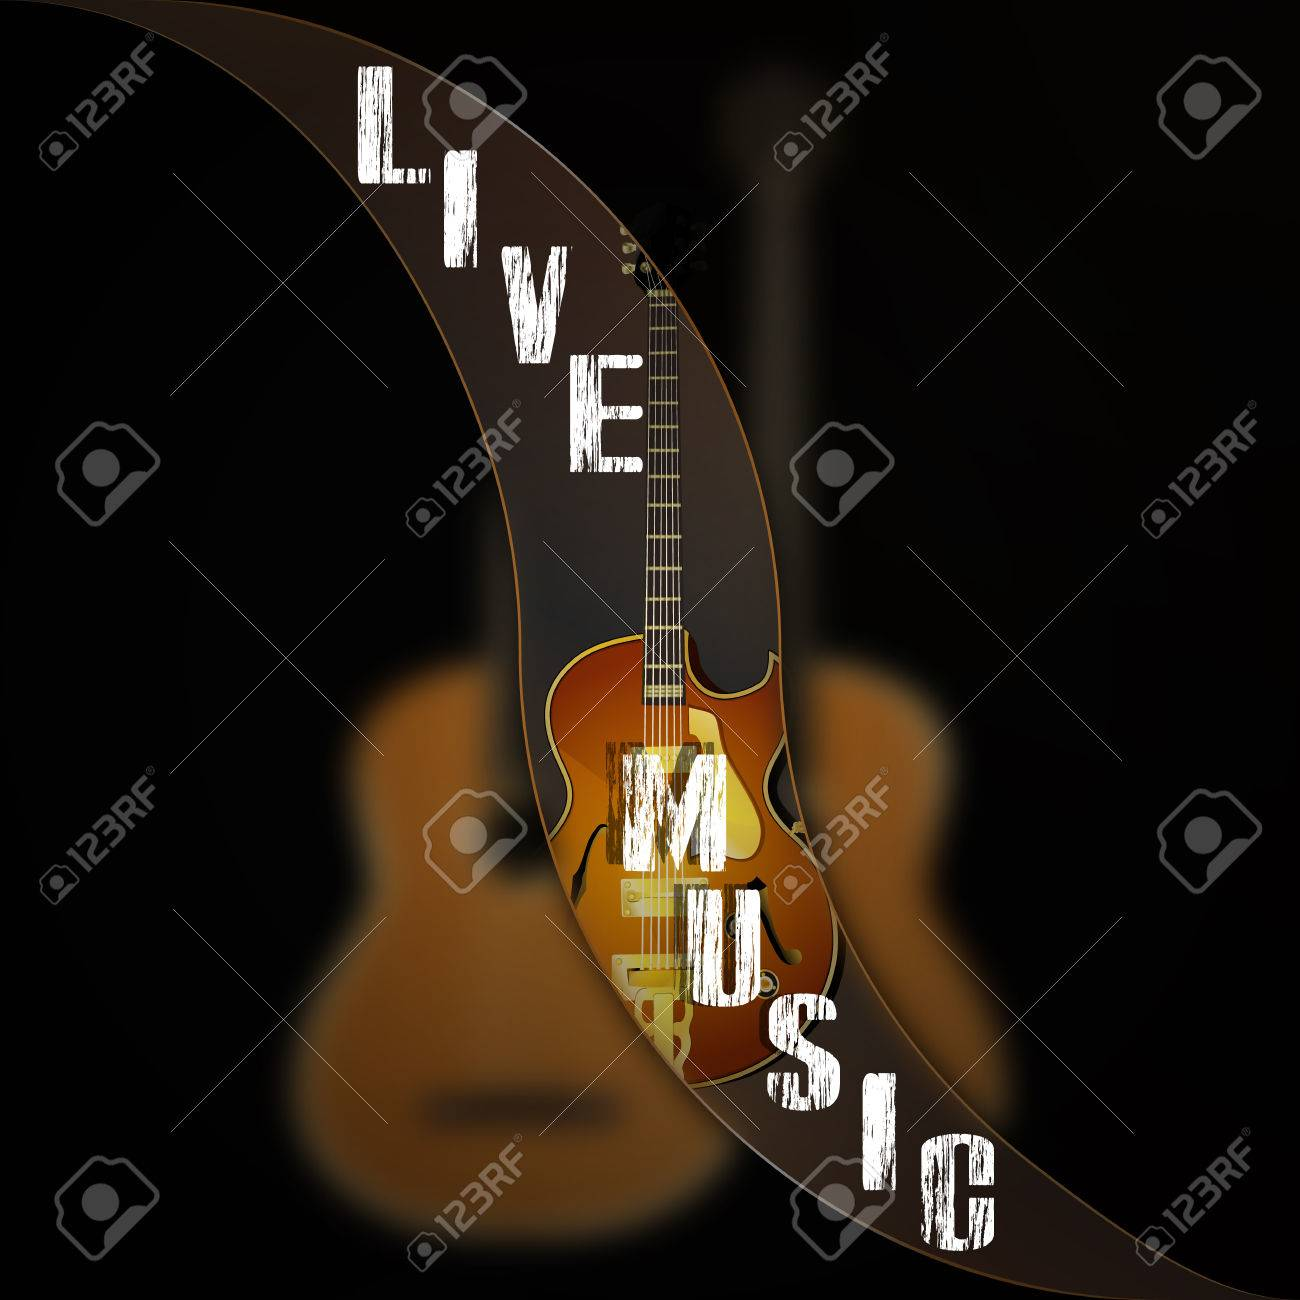 Background With Inscription Live Music Jazz Guitar Acoustic Guitar